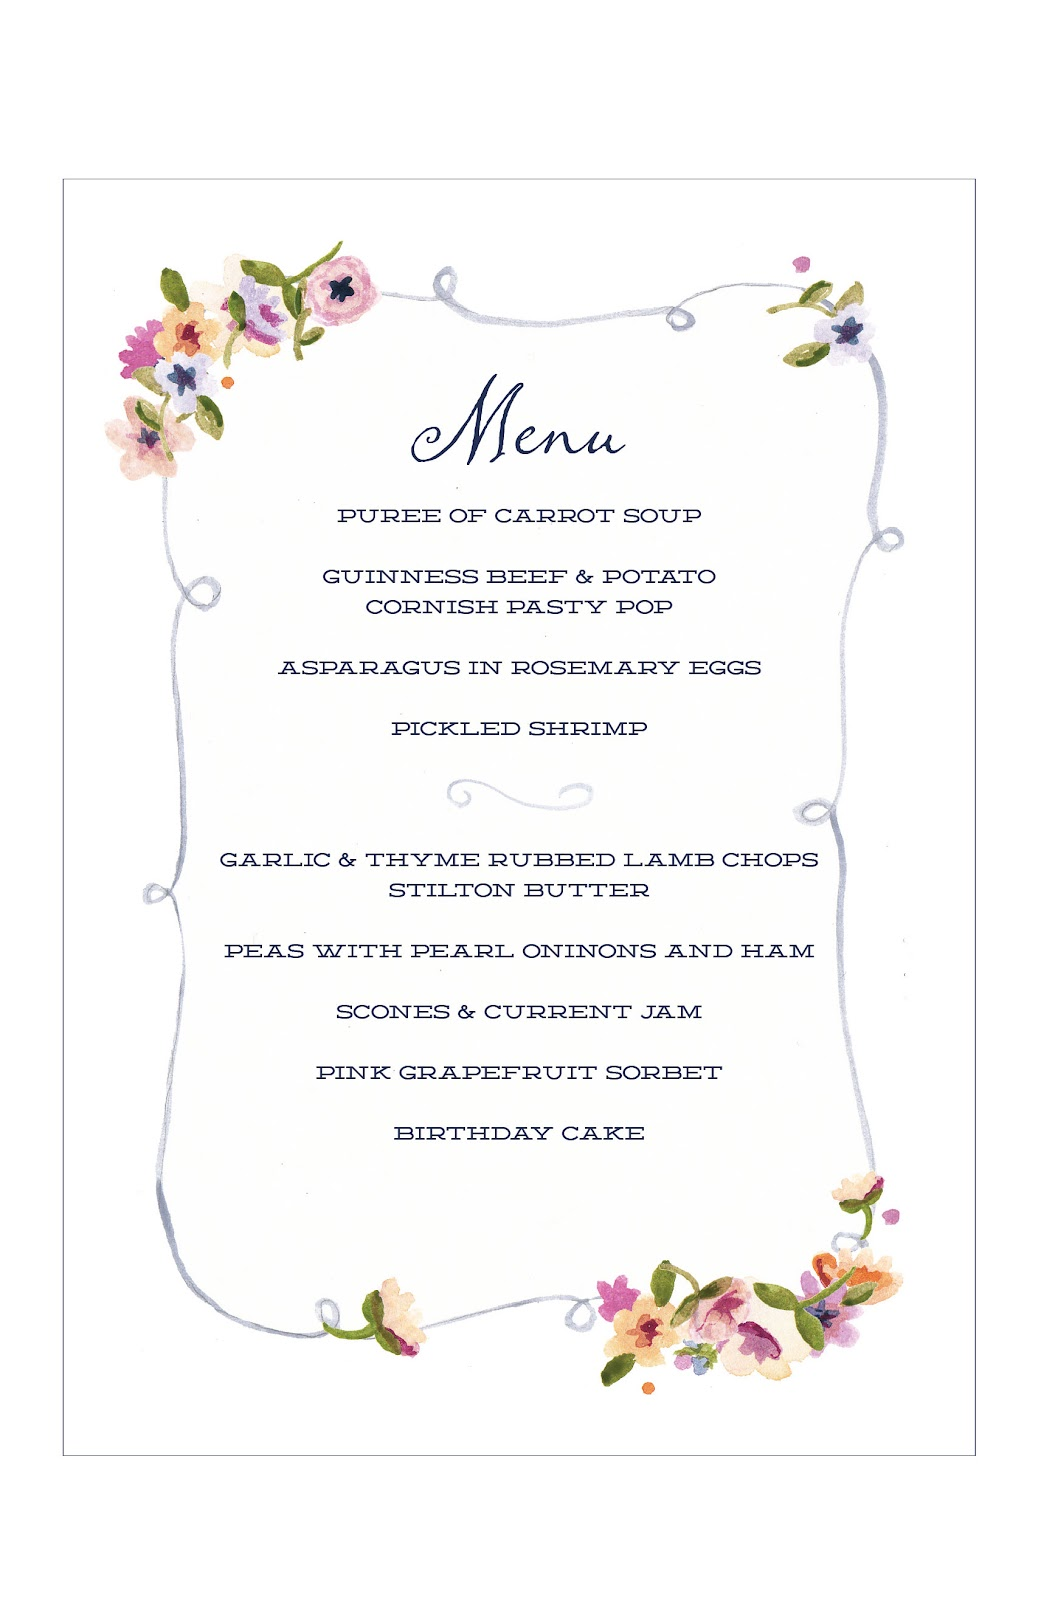 Margotmadison dinner a la downton abbey for Tea party menu template